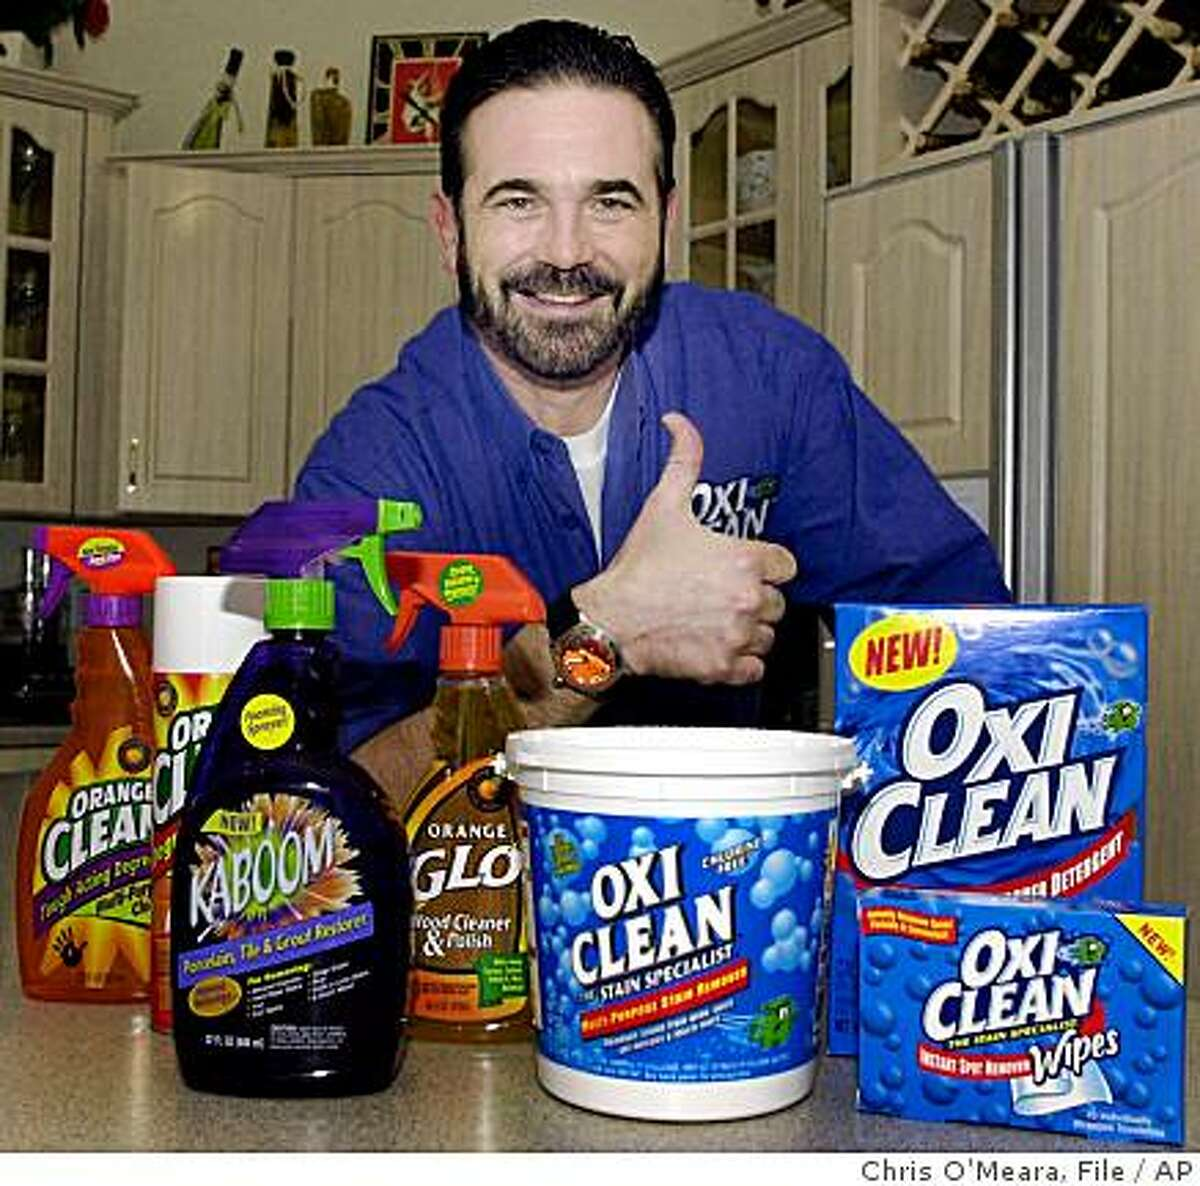 FILE - In this Dec. 6, 2002 file photo,TV pitchman Billy Mays poses with some of his cleaning products at his Palm Harbor, Fla., home. Tampa police say Mays, the television pitchman known for his boisterous hawking of products such as Orange Glo and OxiClean, has died. He was 50. (AP Photo/Chris O'Meara, File)